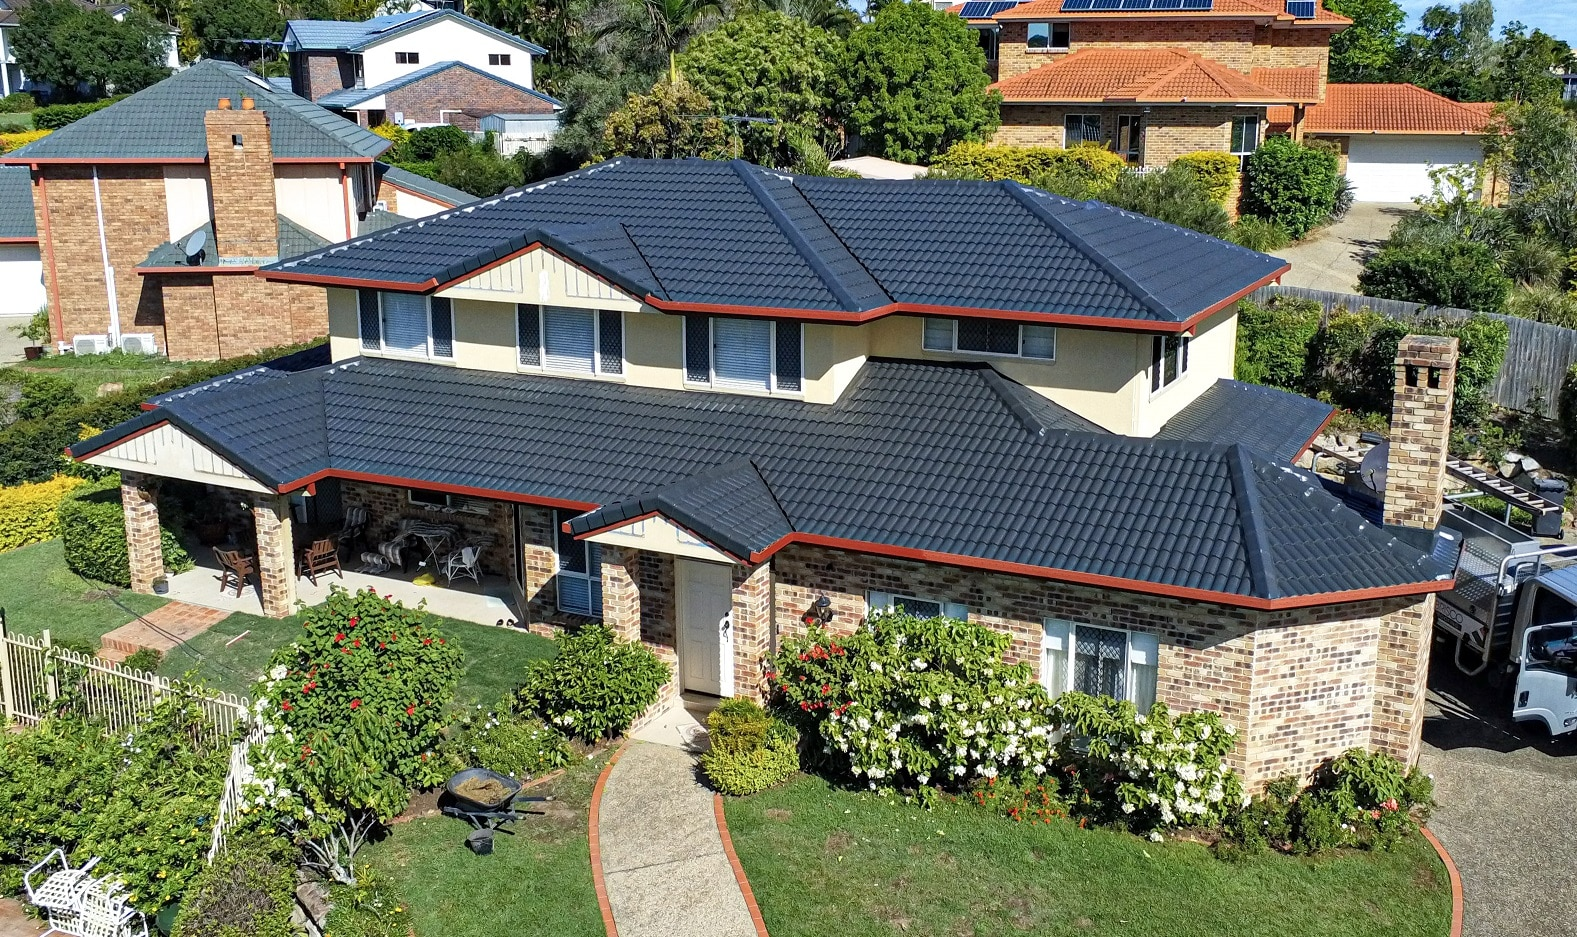 Roof Restoration and Repairs Victoria Point